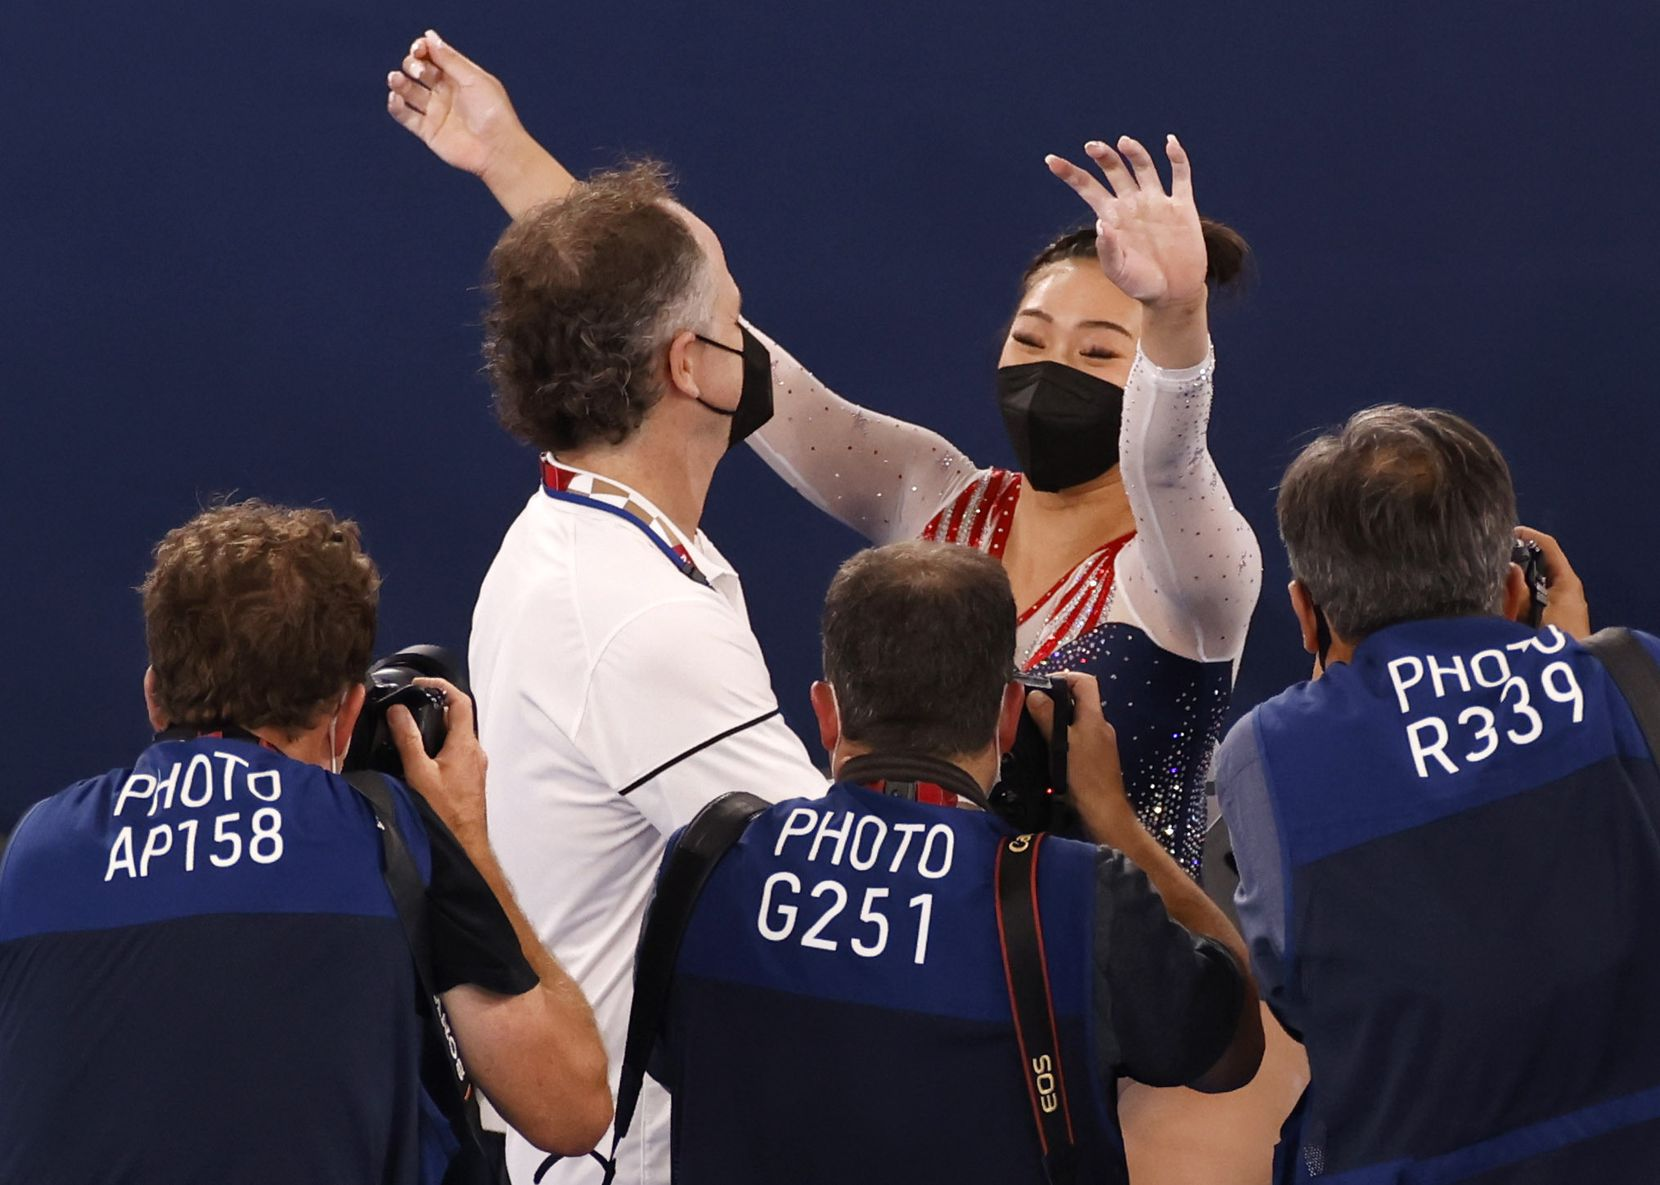 USA's Sunisa Lee hugs her coach Jeff Graba after winning gold in the women's all-around final at the postponed 2020 Tokyo Olympics at Ariake Gymnastics Centre, on Thursday, July 29, 2021, in Tokyo, Japan. (Vernon Bryant/The Dallas Morning News)